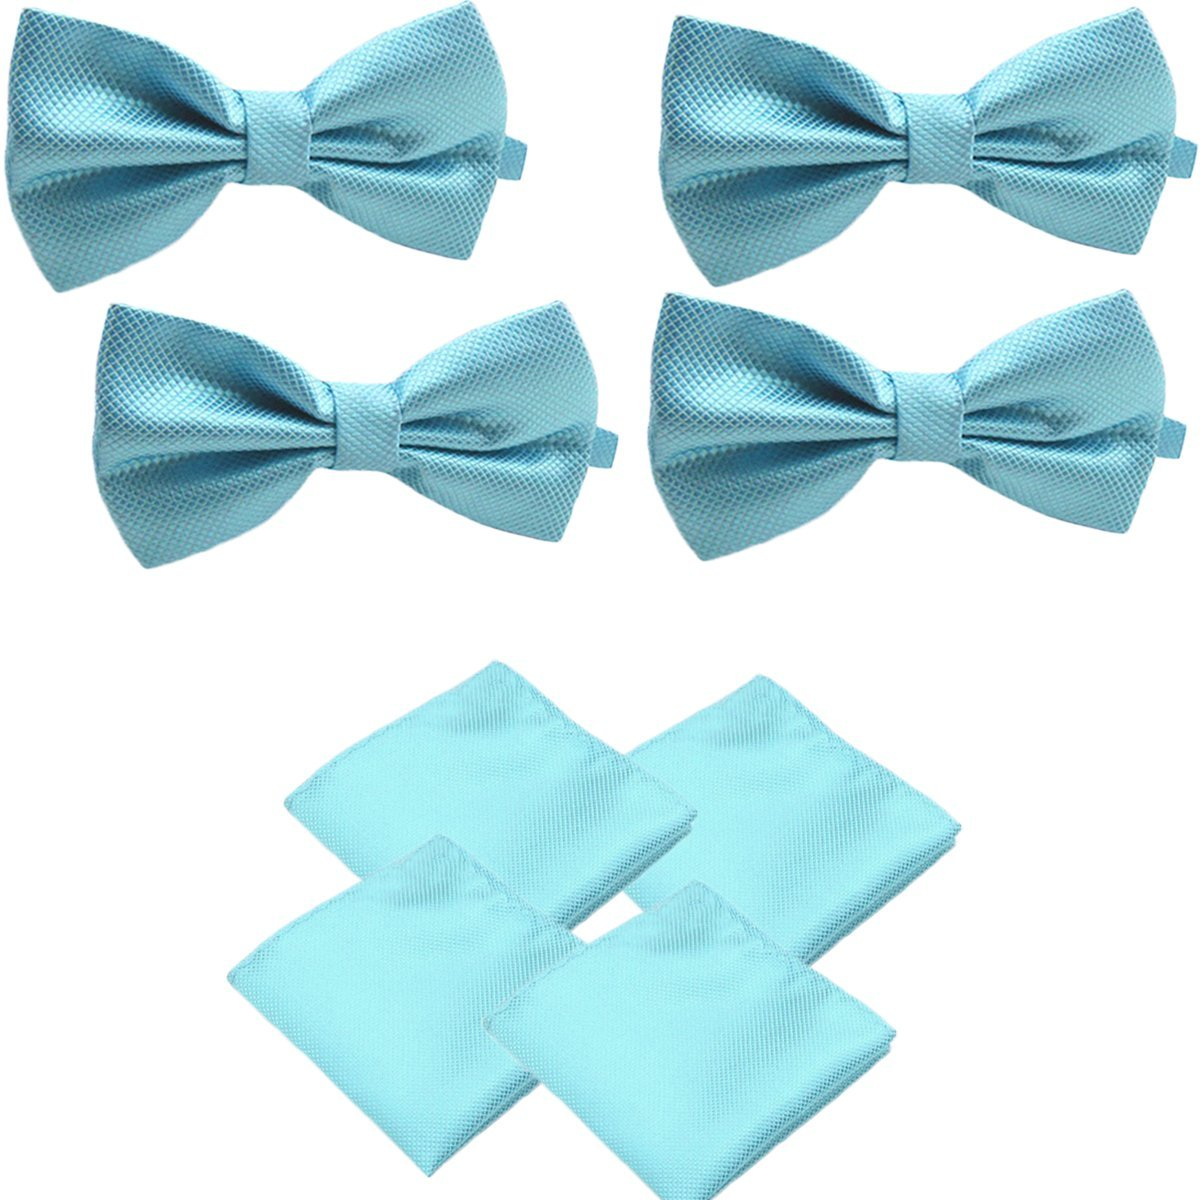 Turquoise Blue, 3 Solid Matching Pre-Tied Bow Tie and Pocket Square Sets for Formal Events